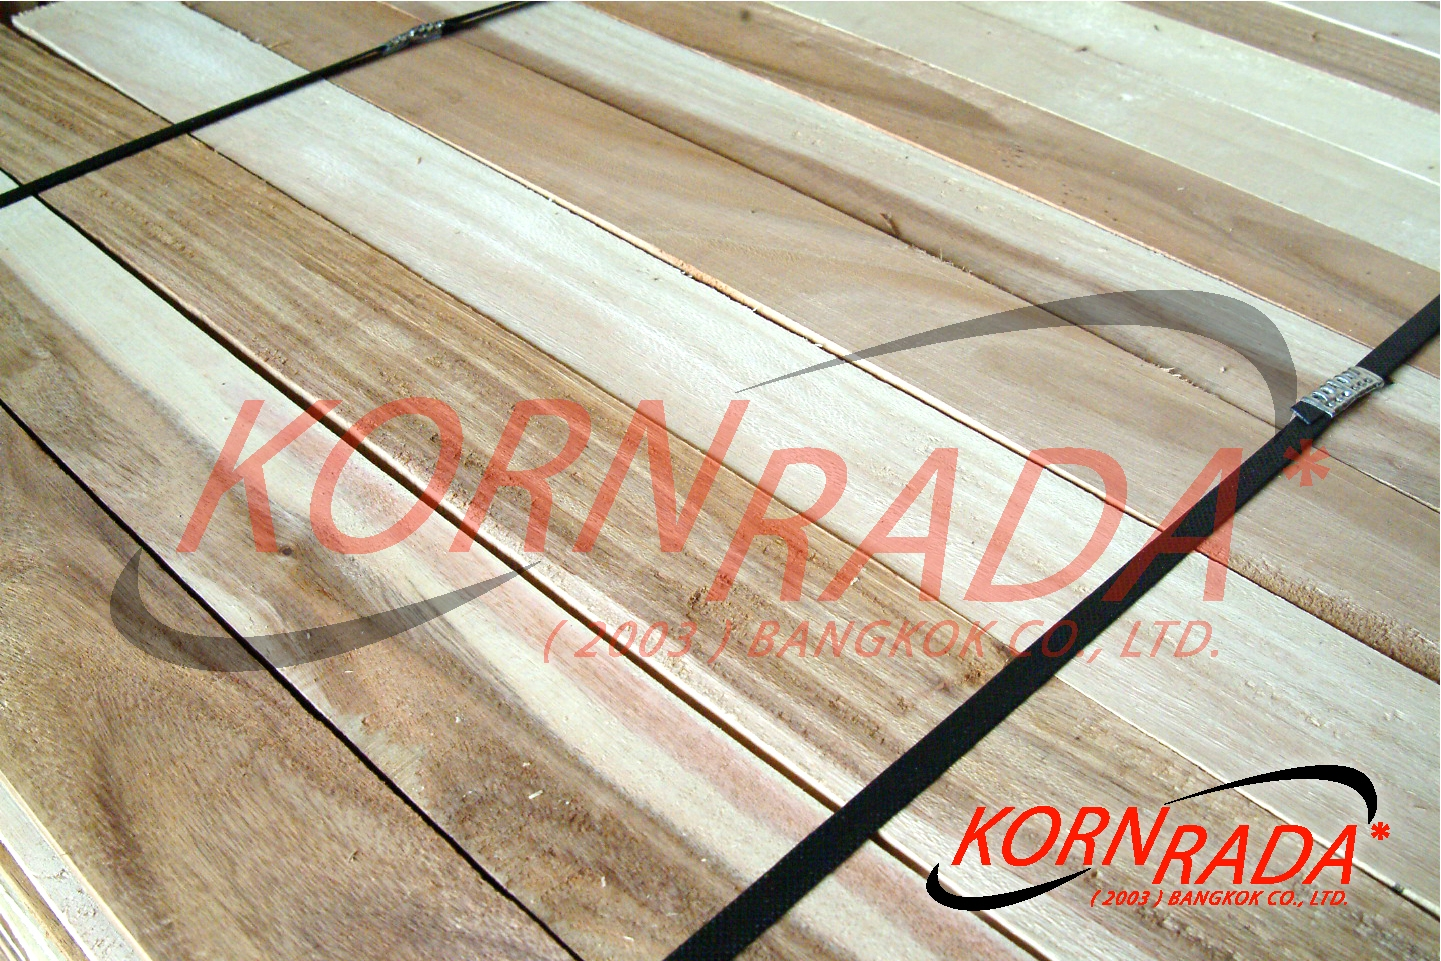 kornrada_products_2186